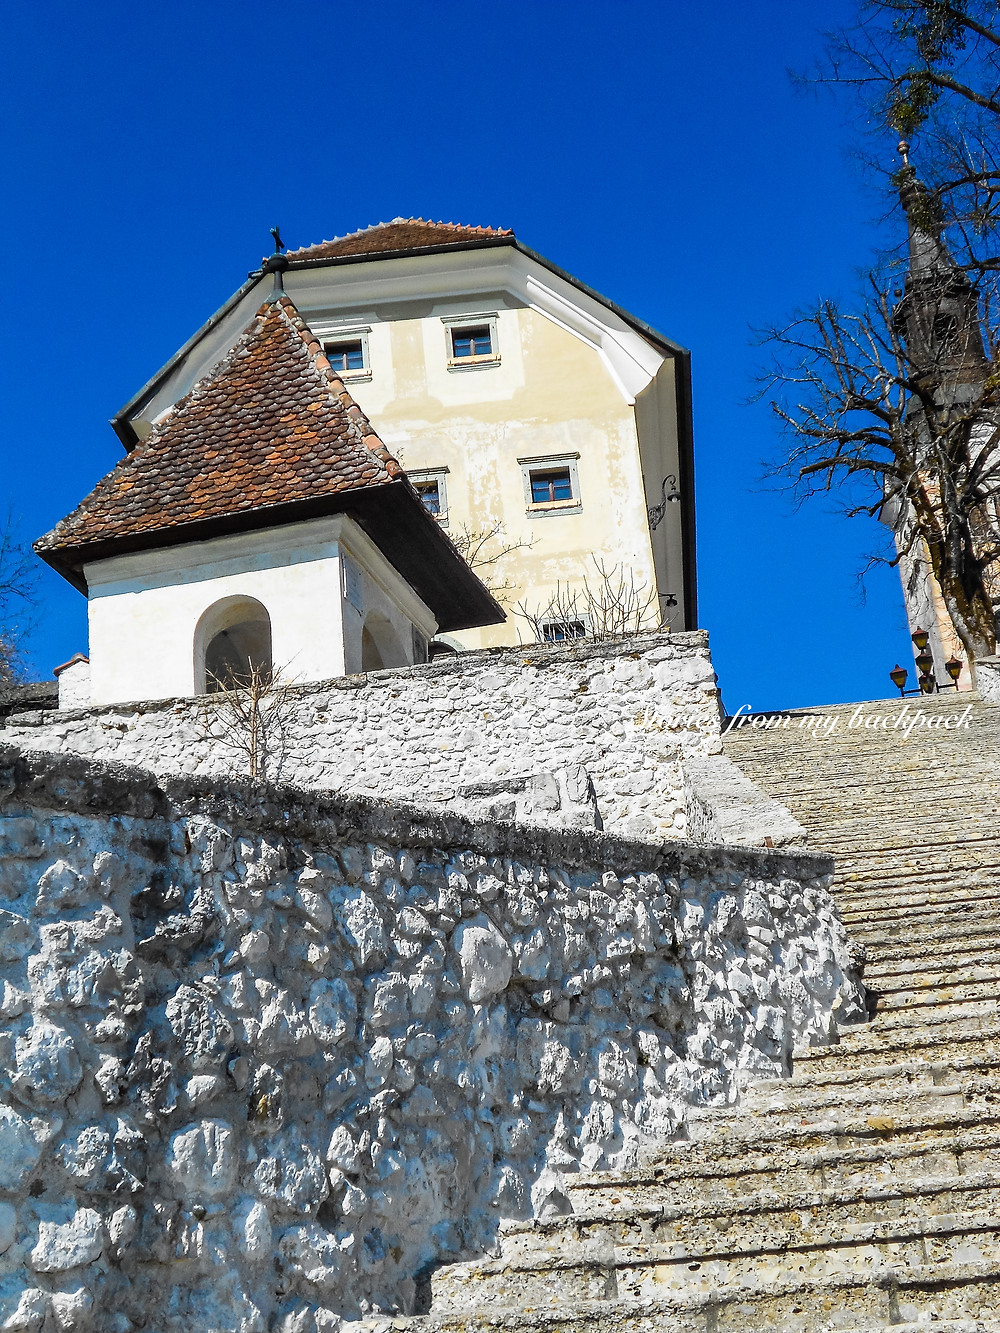 The church of assumption, 99 steps in bled, bled island, legend of ringing the bell in bled, legend of the bell bled, bled island things to do